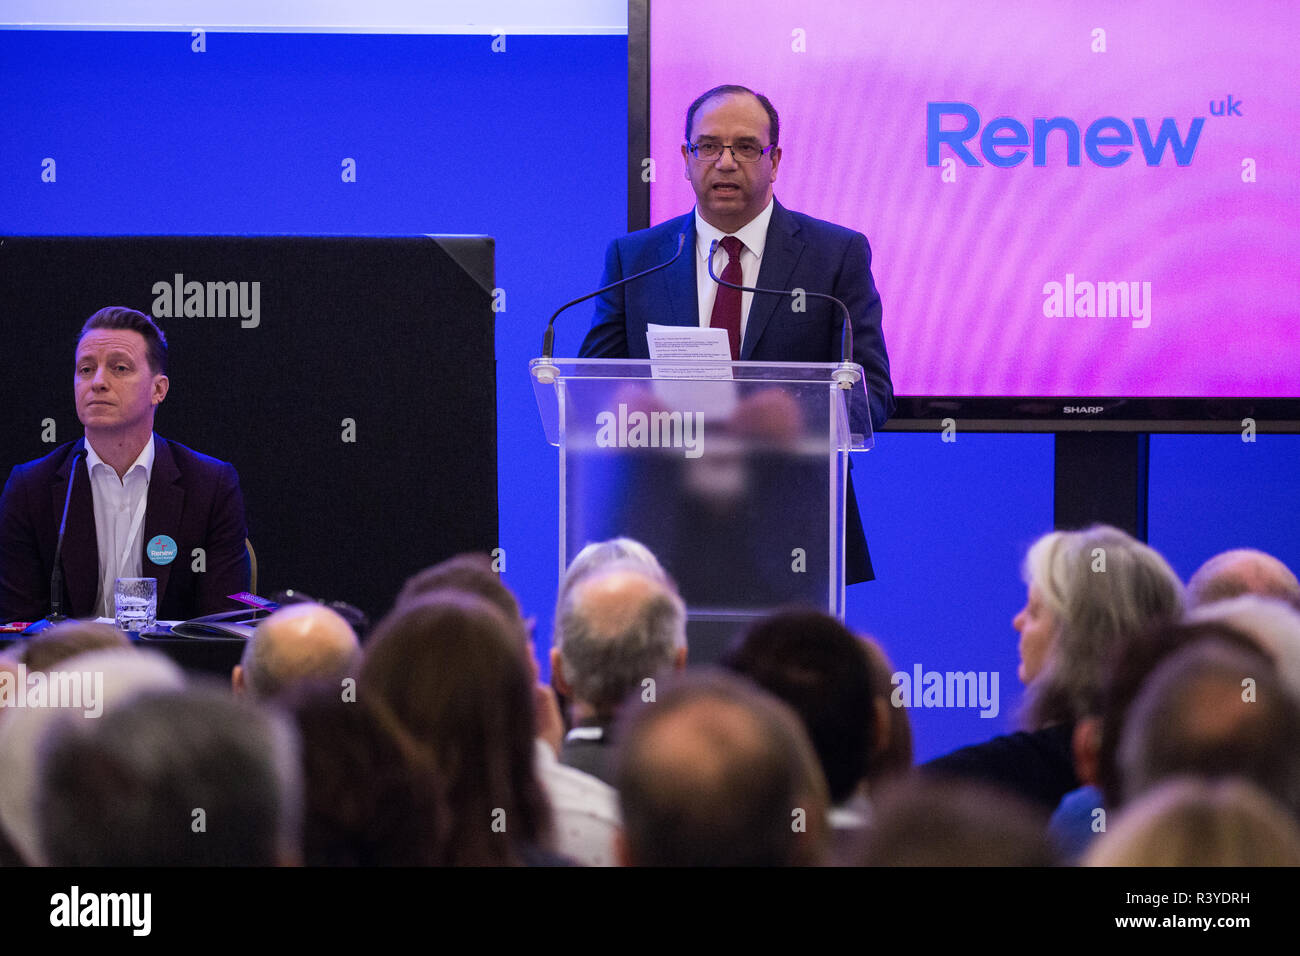 London, UK. 24th November, 2018. Alan Victor, candidate for Renew UK, a new centrist political party launched in February 2018, addresses its inaugural National Assembly at Westminster Central Hall. Renew UK, led by Leaders Annabel Mullin and James Torrance and Deputy Leader James Clarke, has signed up 100 candidates ready to stand in future UK elections based on a wide-ranging programme of reform. Credit: Mark Kerrison/Alamy Live News - Stock Image